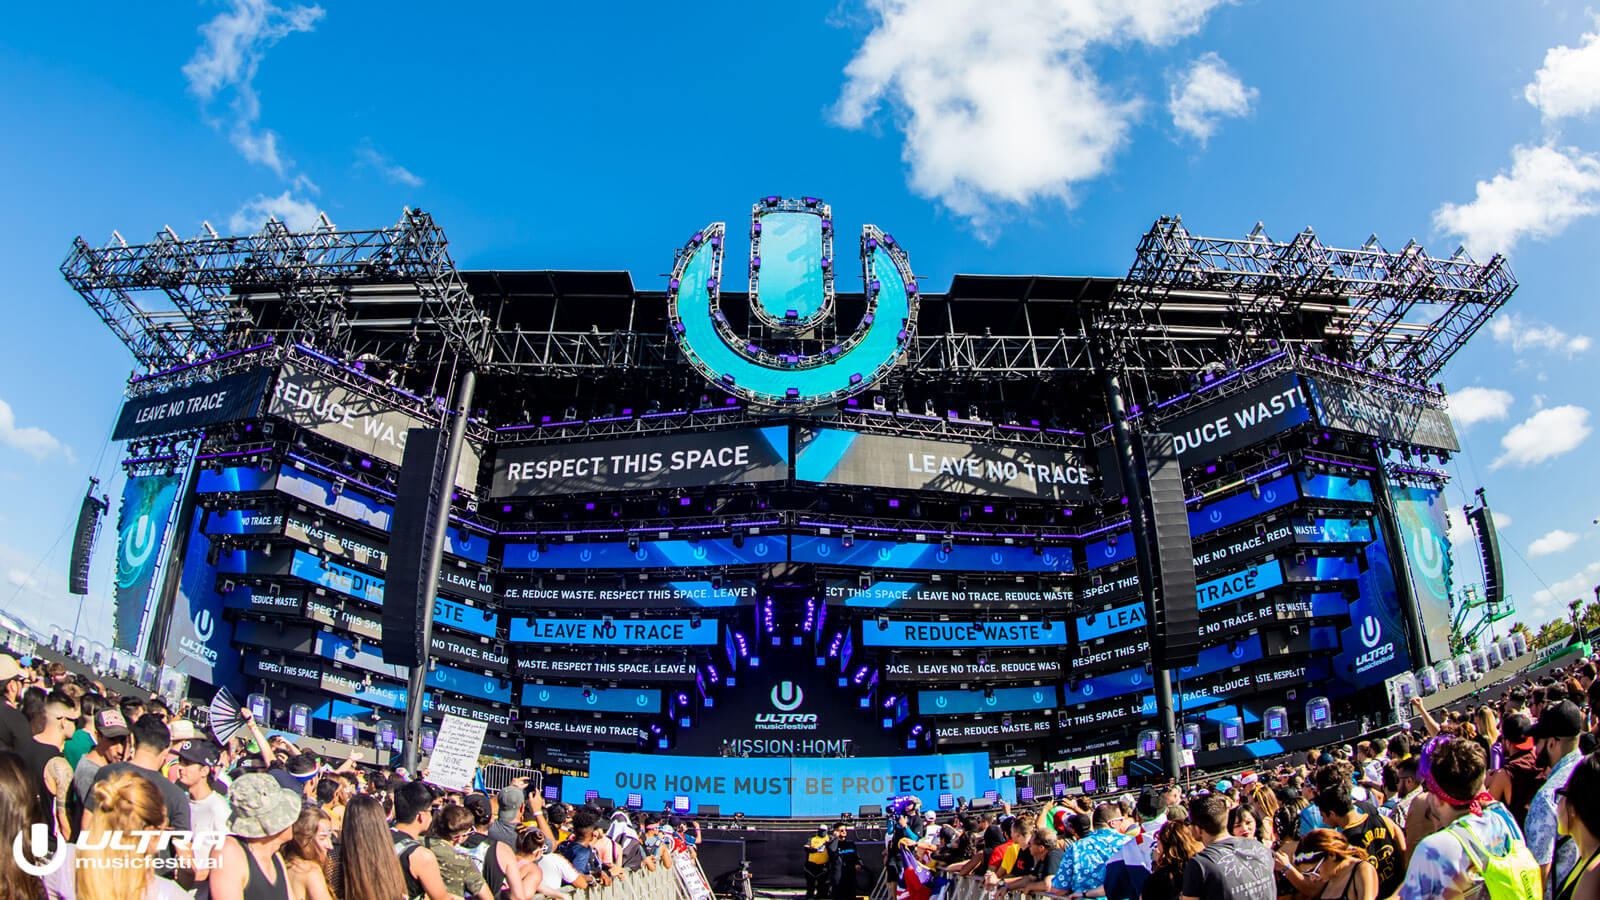 Ultra Music Festival Commits to Continuing 'Mission: Home' Environmental Campaigns